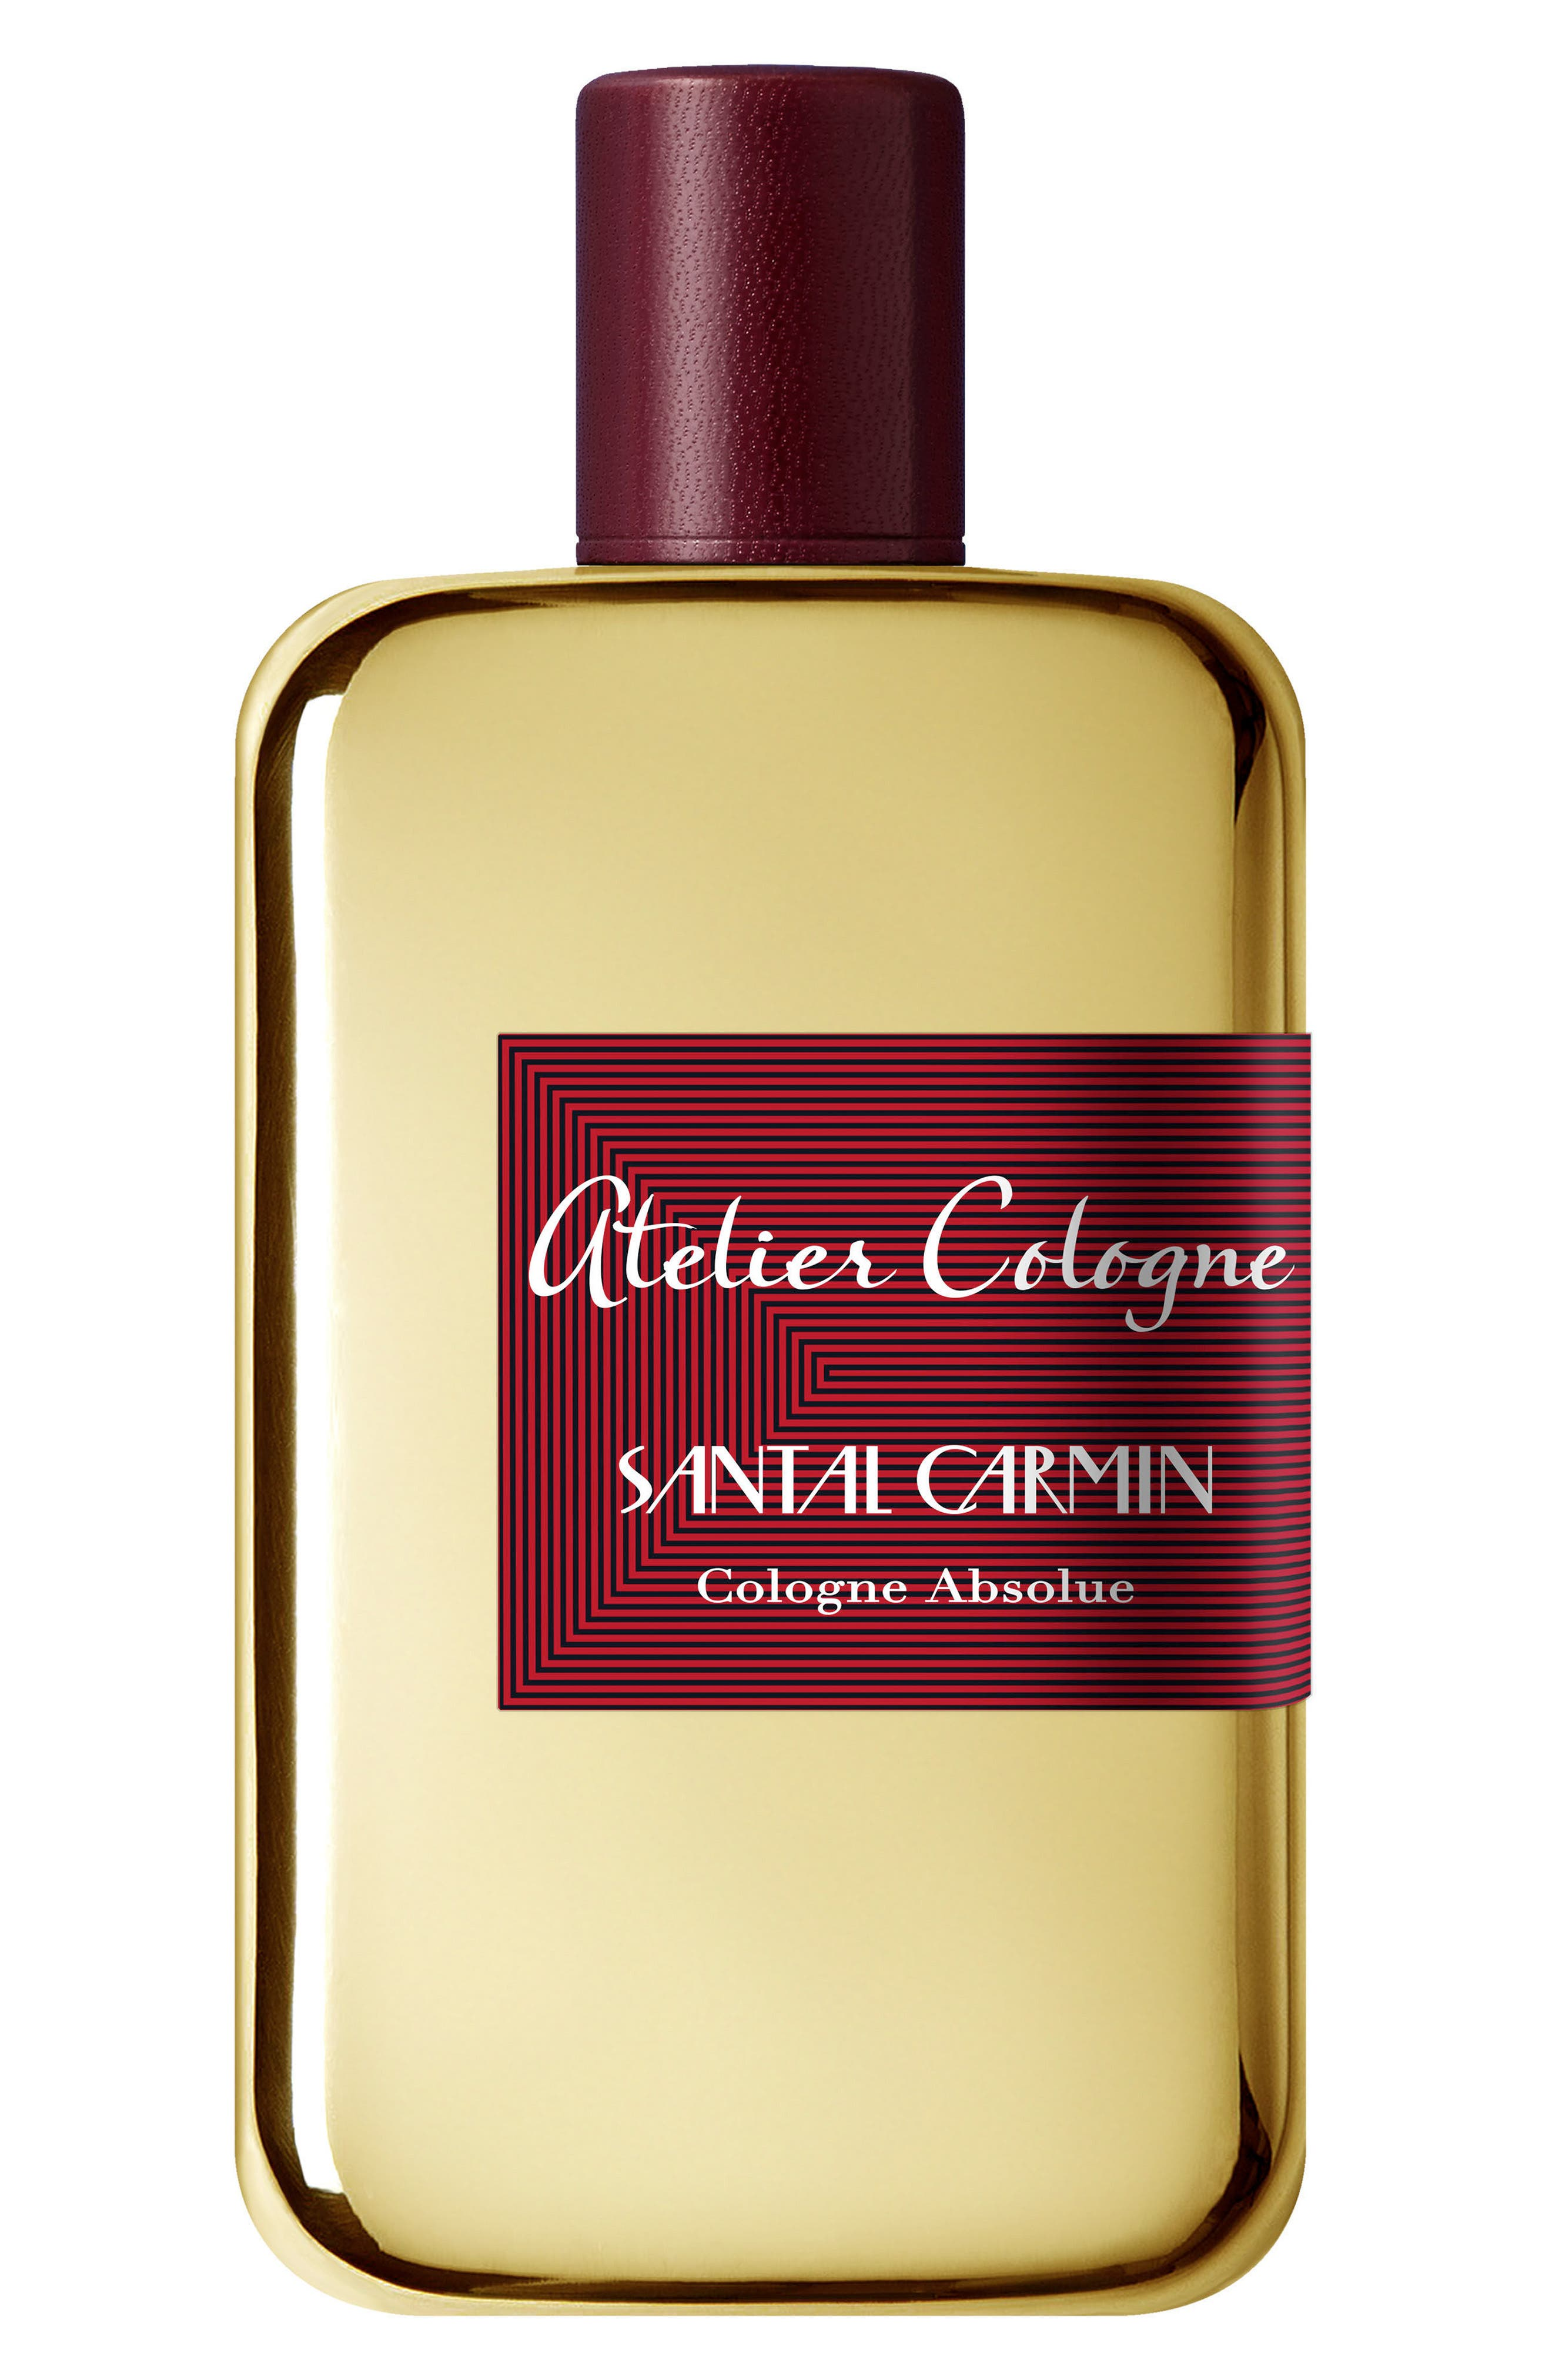 Atelier Cologne Santal Carmin Cologne Absolue